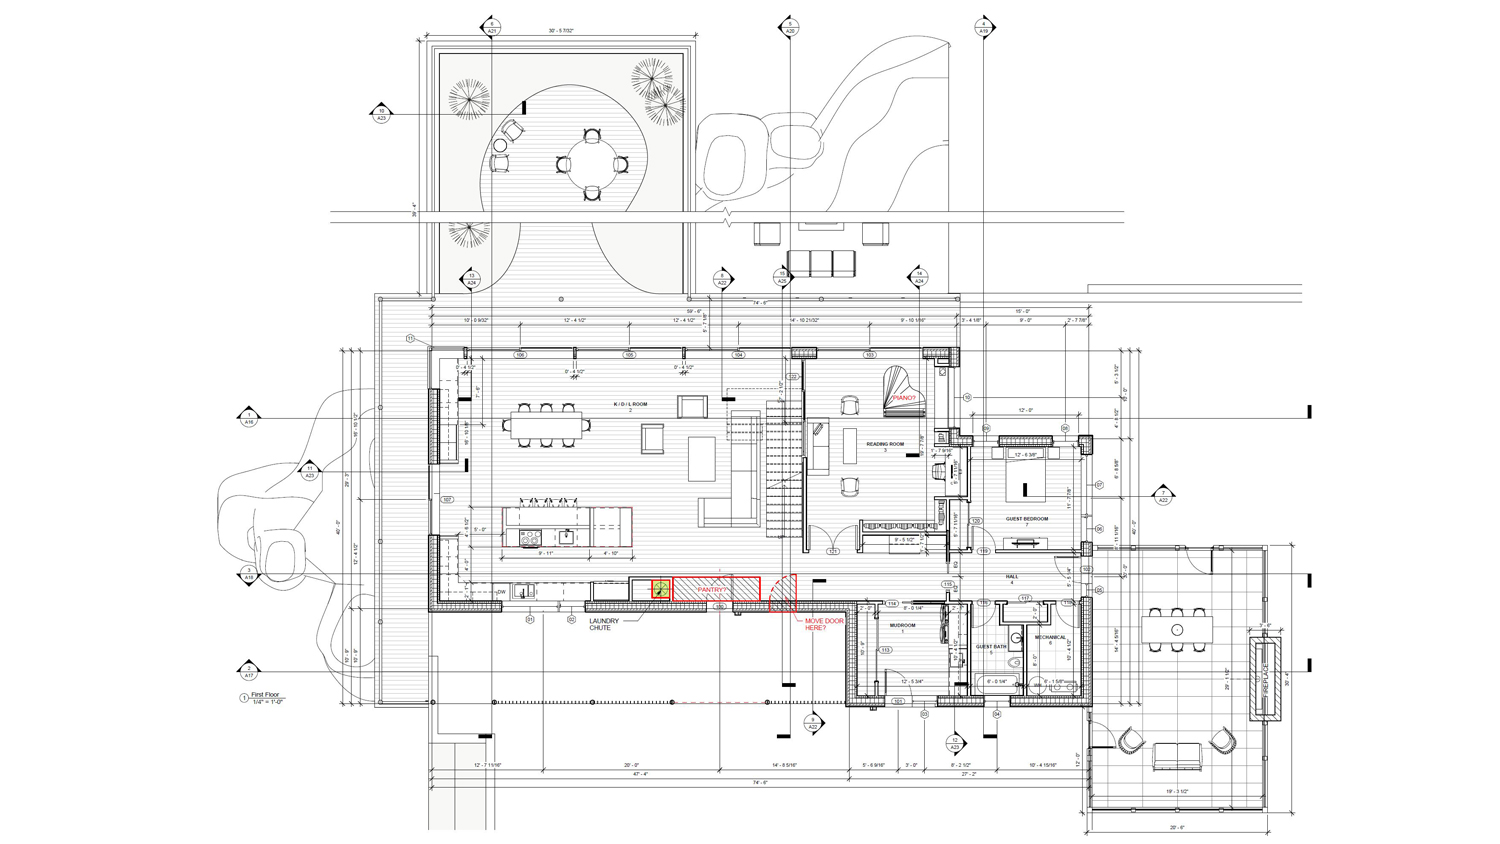 Mithran Revit First Floor Plan 020719